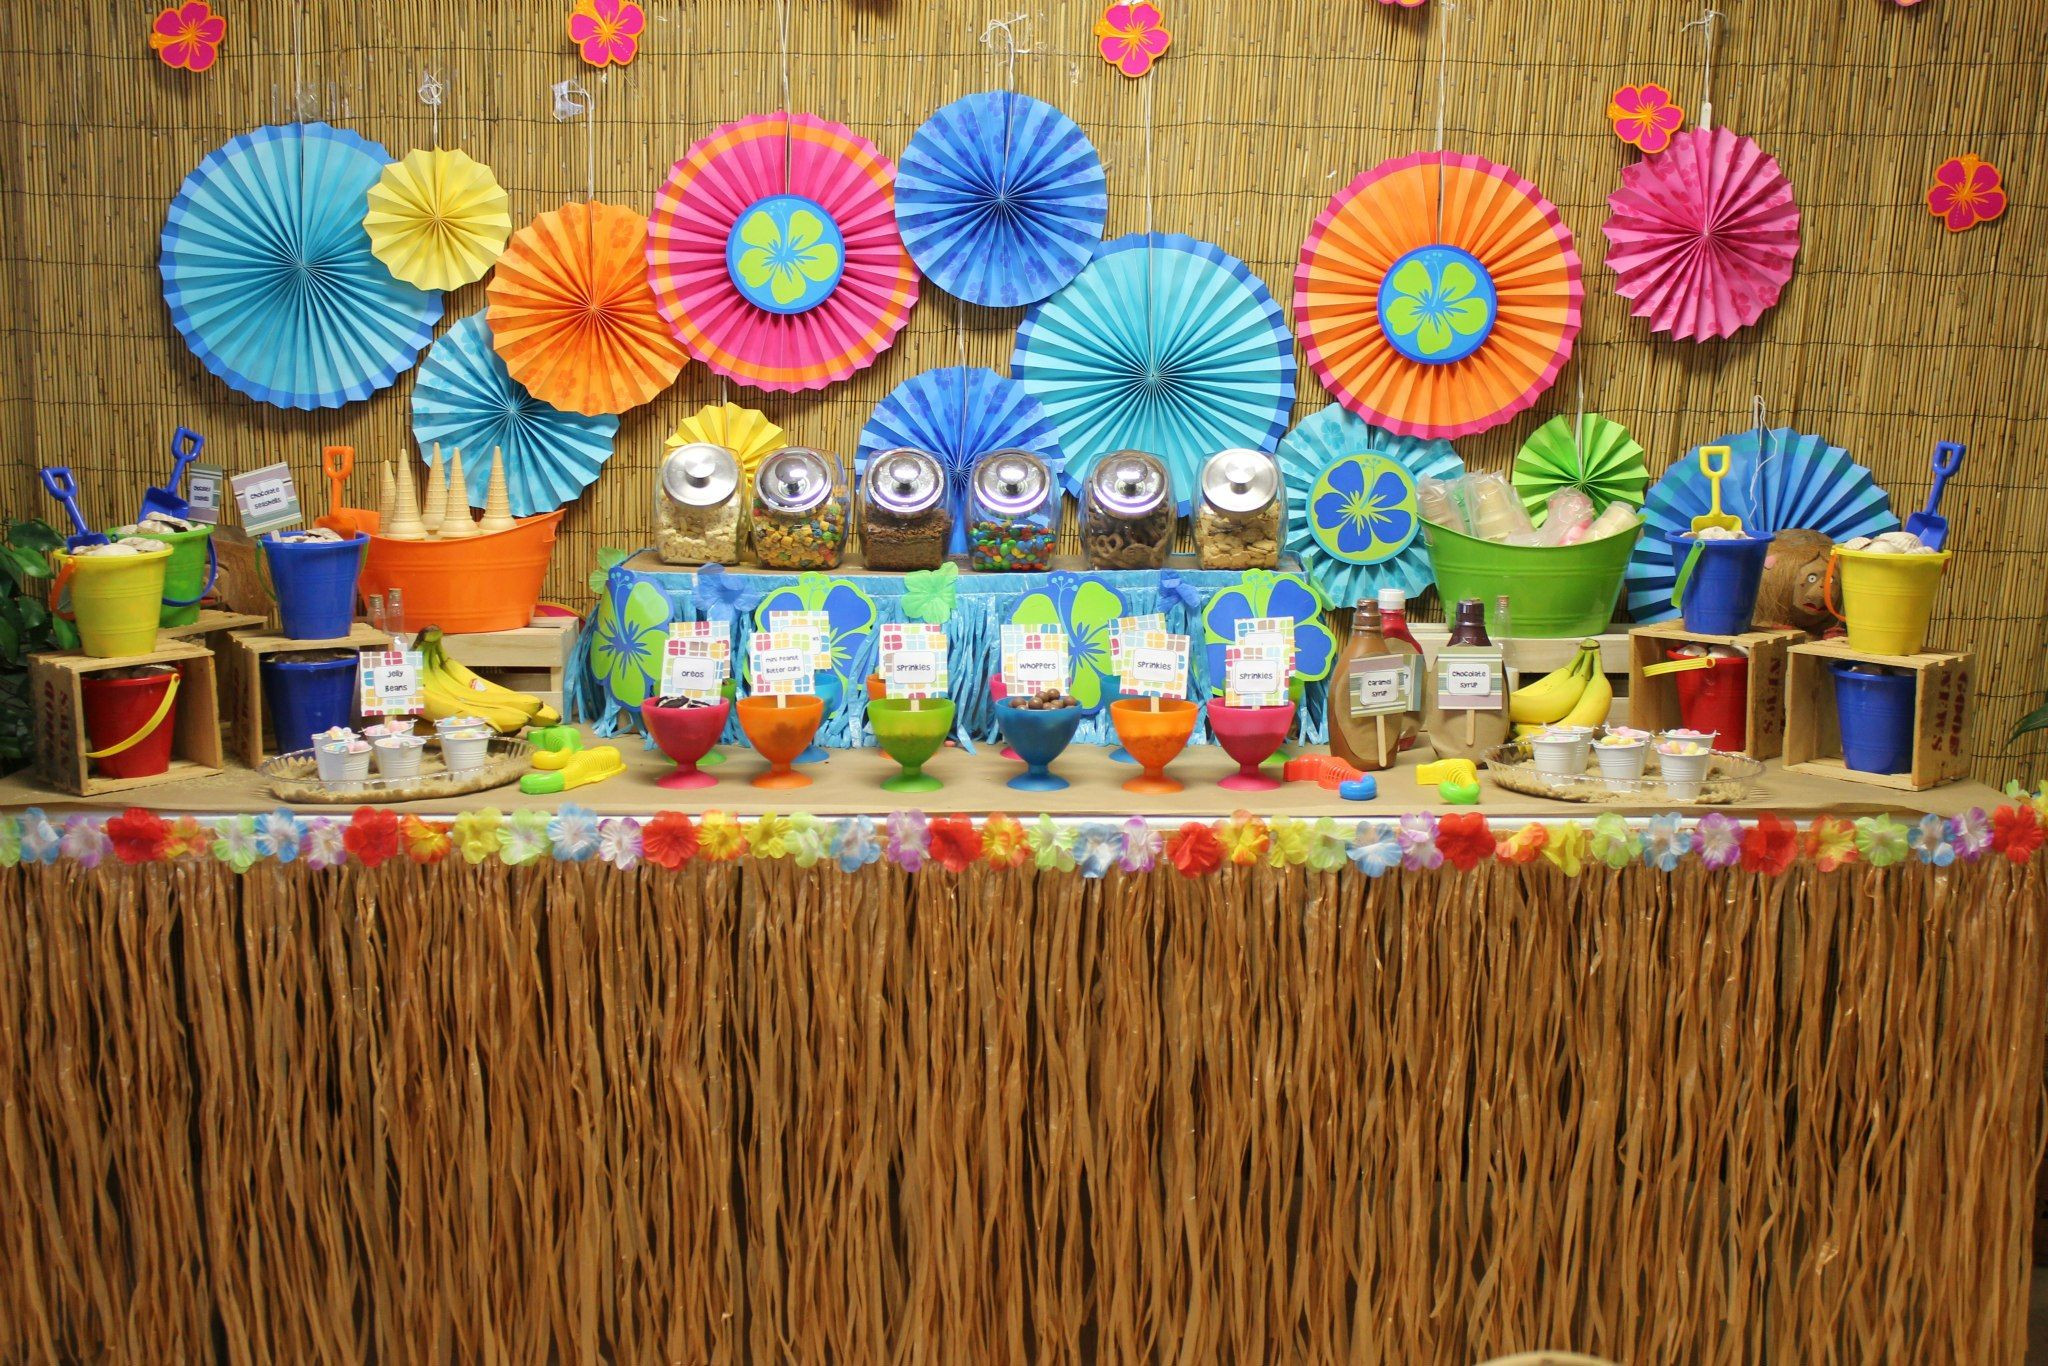 Best ideas about Luau Birthday Party Ideas . Save or Pin Best 25 Luau party centerpieces ideas on Pinterest Now.